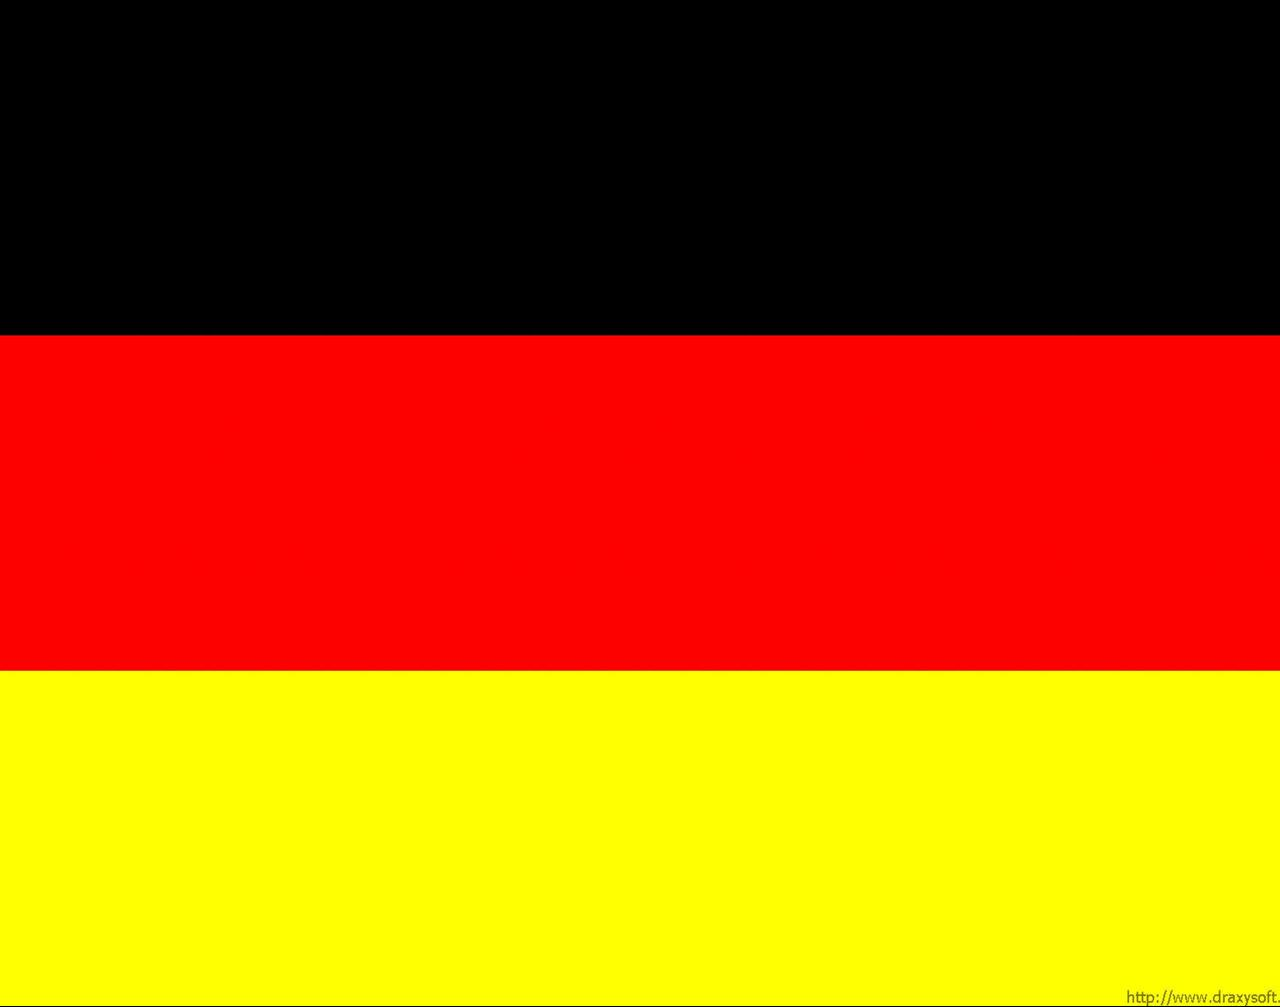 deutschland flag wallpaper - photo #27